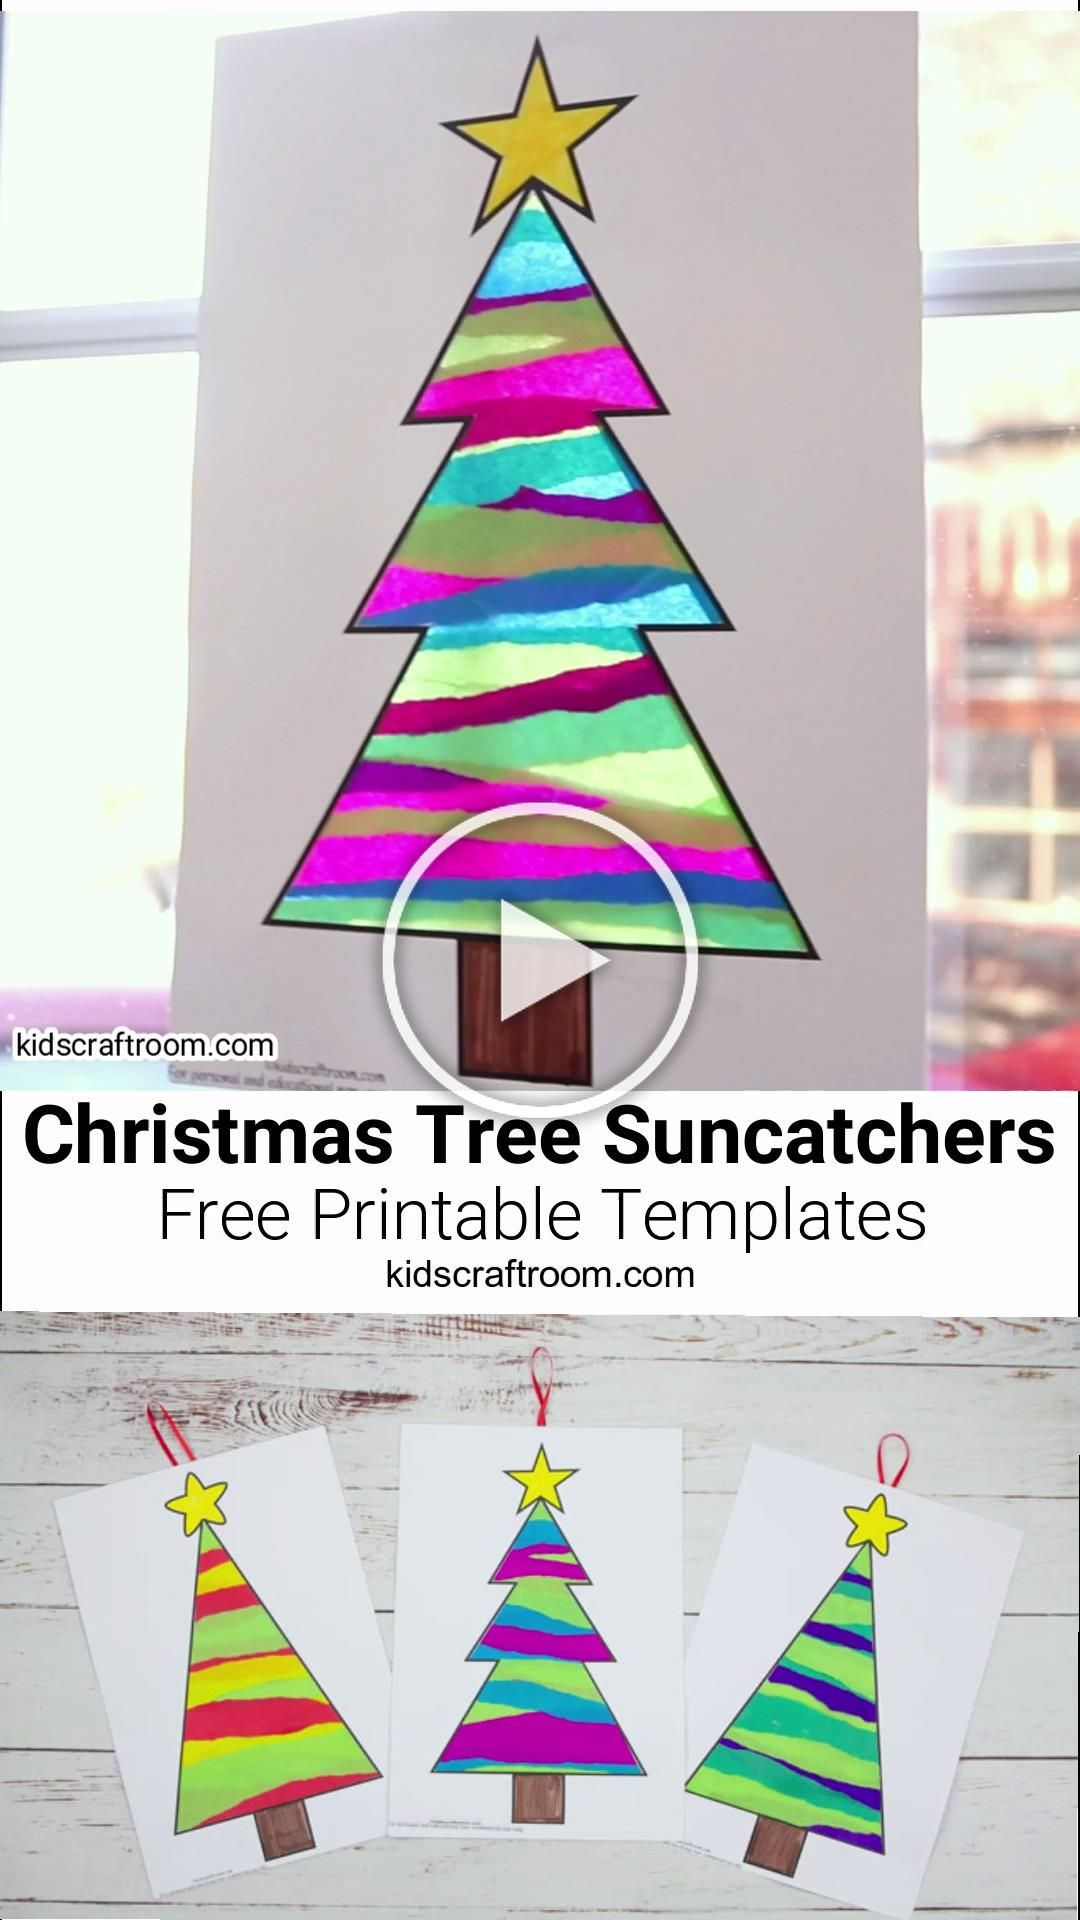 This Tissue Paper Christmas Tree Suncatcher Craft is such a pretty Christmas craft for kids. Easy to make with the free printable templates and layers of torn tissue paper. When the light shines through them the colours look amazing, like stained glass! A lovely Christmas suncatcher craft for little and big kids with lots of fun paper tearing to build fine motor skills. #kidscraftroom #Christmascrafts #christmas #suncatchers #suncatcher #christmastree #papercrafts #tissuepaper #kidscrafts